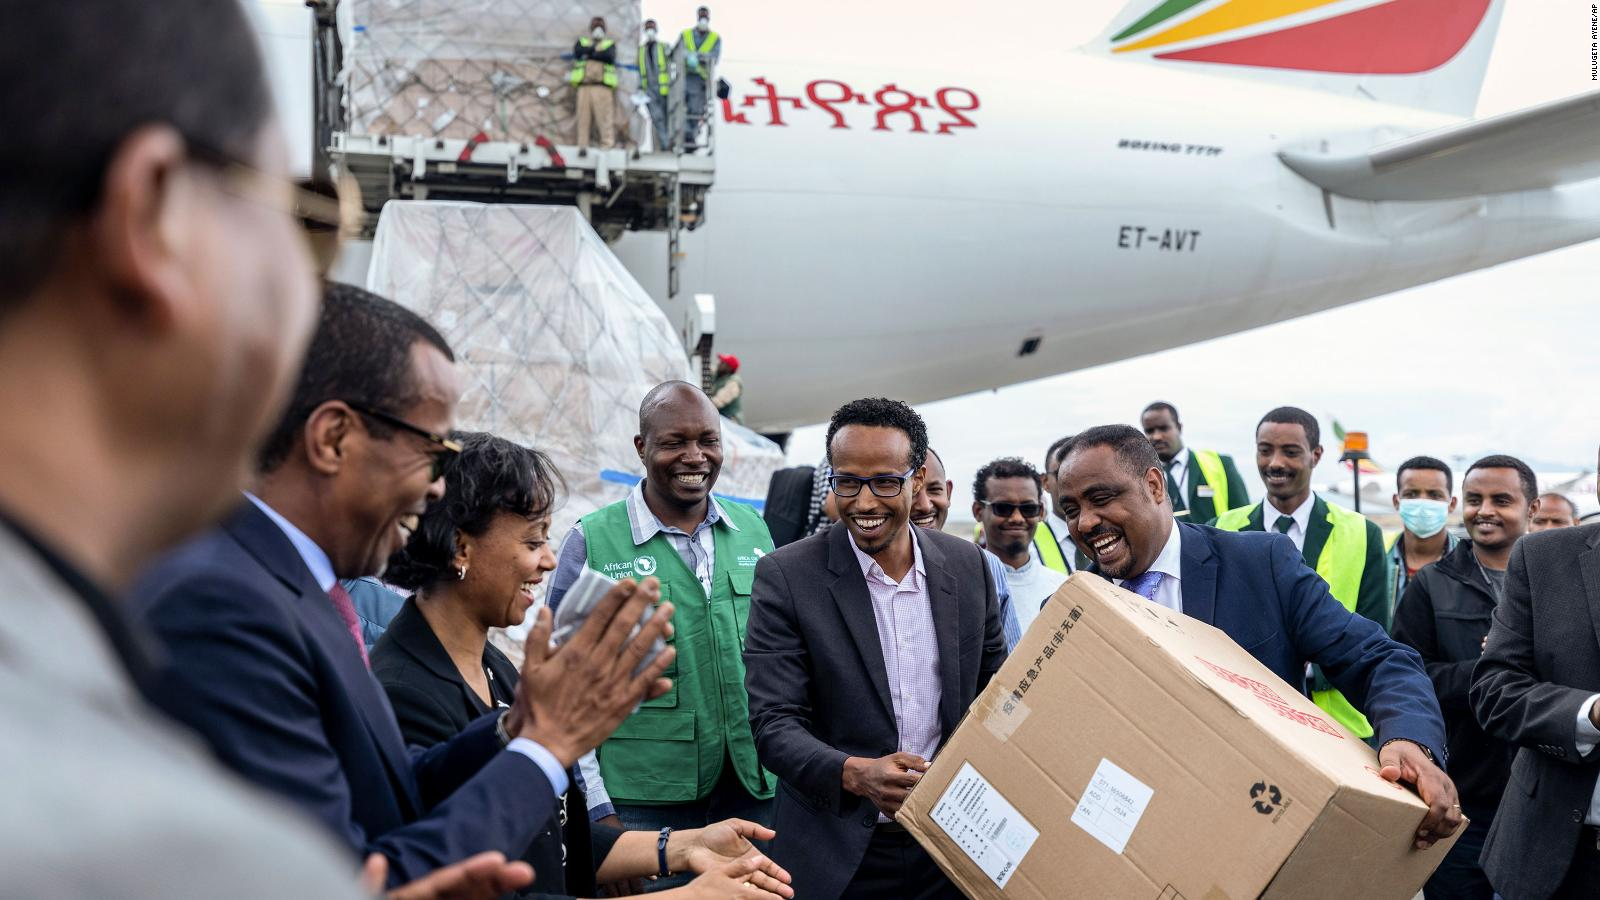 Ethiopia And Rwanda Receive Coronavirus Test Kits From Chinese Billionaire Jack Ma Cnn The visit by the ethiopian delegation led by the minister of innovation and technology came a few months after ethiopia prime minister abiy ahmed's visit to the headquarters of alibaba in hangzhou. experts coronavirus could hit african countries hardest